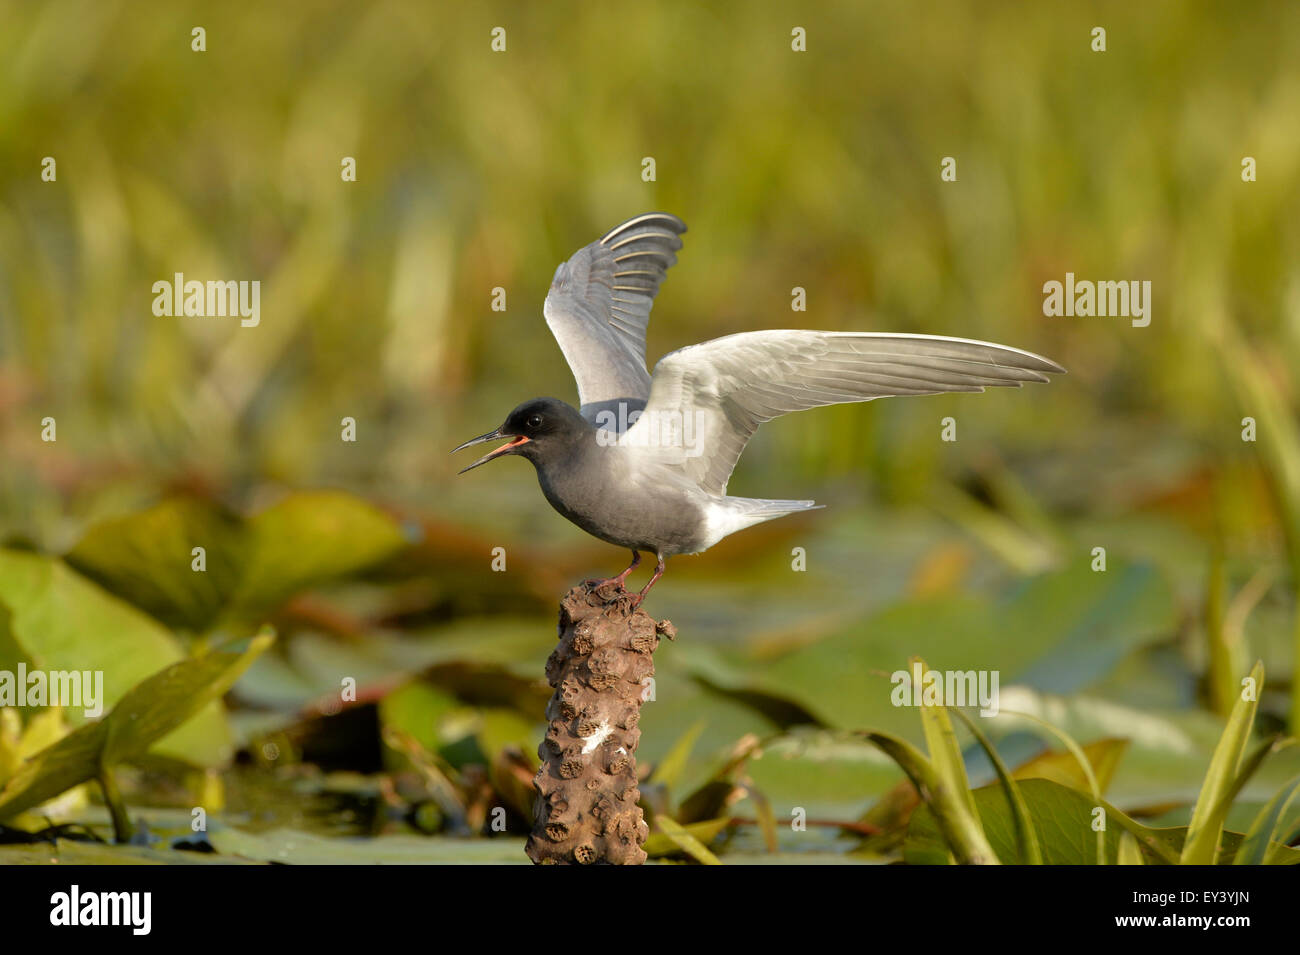 Black Tern (Chlidonias niger) adult in breeding plumage, standing on stump with wings raised, Danube delta, Romania, - Stock Image